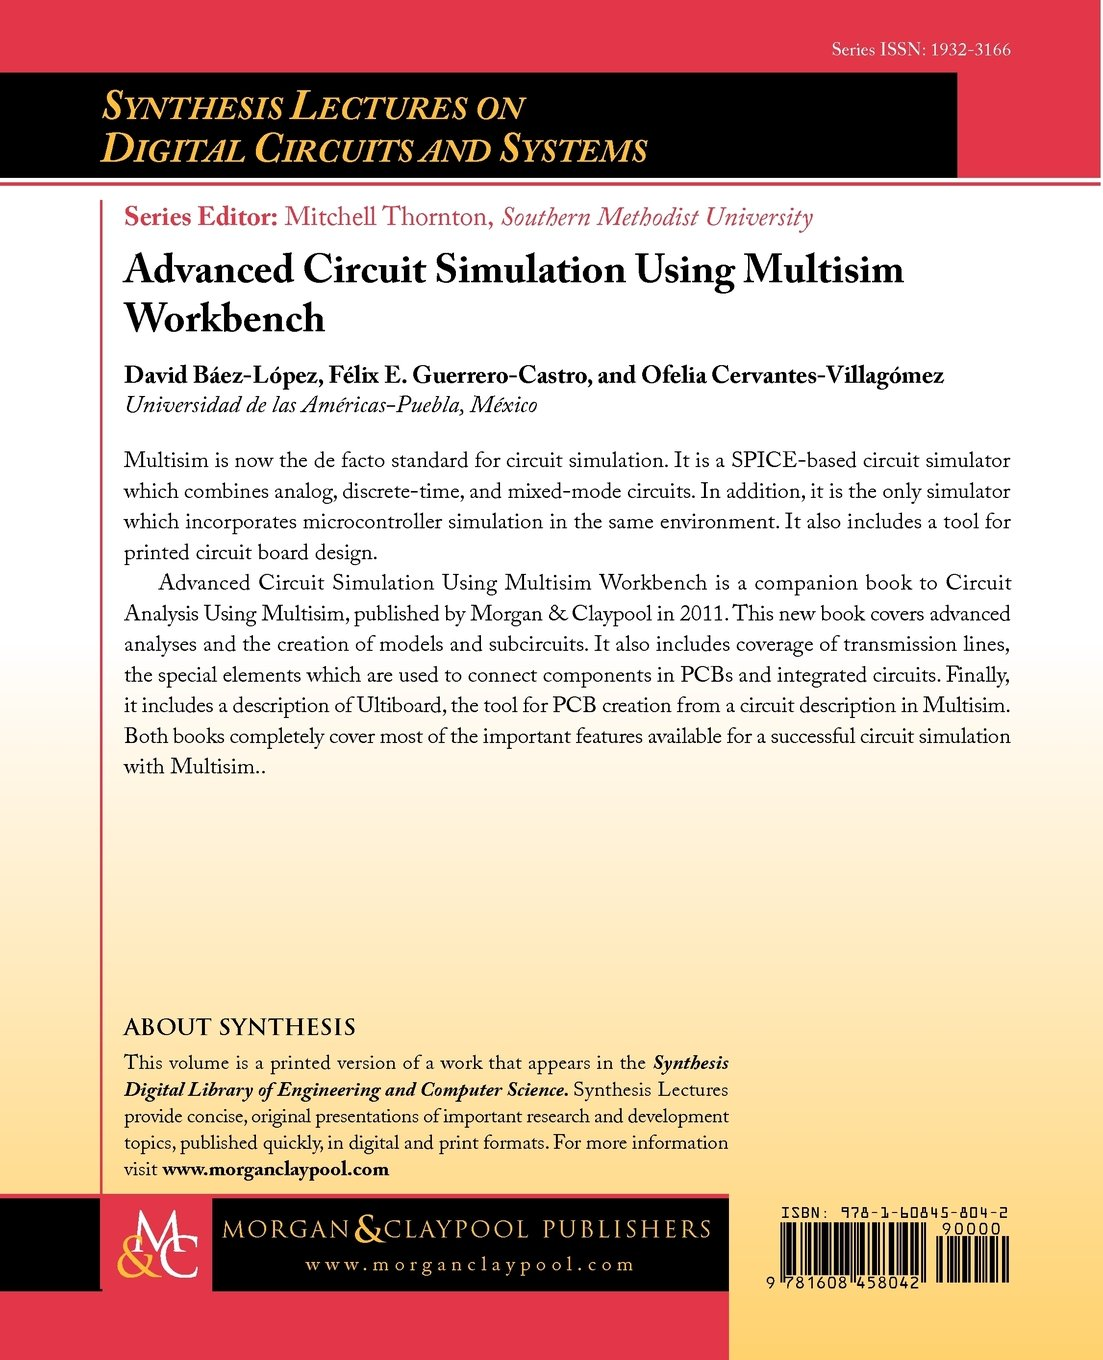 Advanced Circuit Simulation Using Multisim Workbench Synthesis 4 Way Switch Lectures On Digital Circuits And Systems David Bez Lpez Flix Guerrero Castro